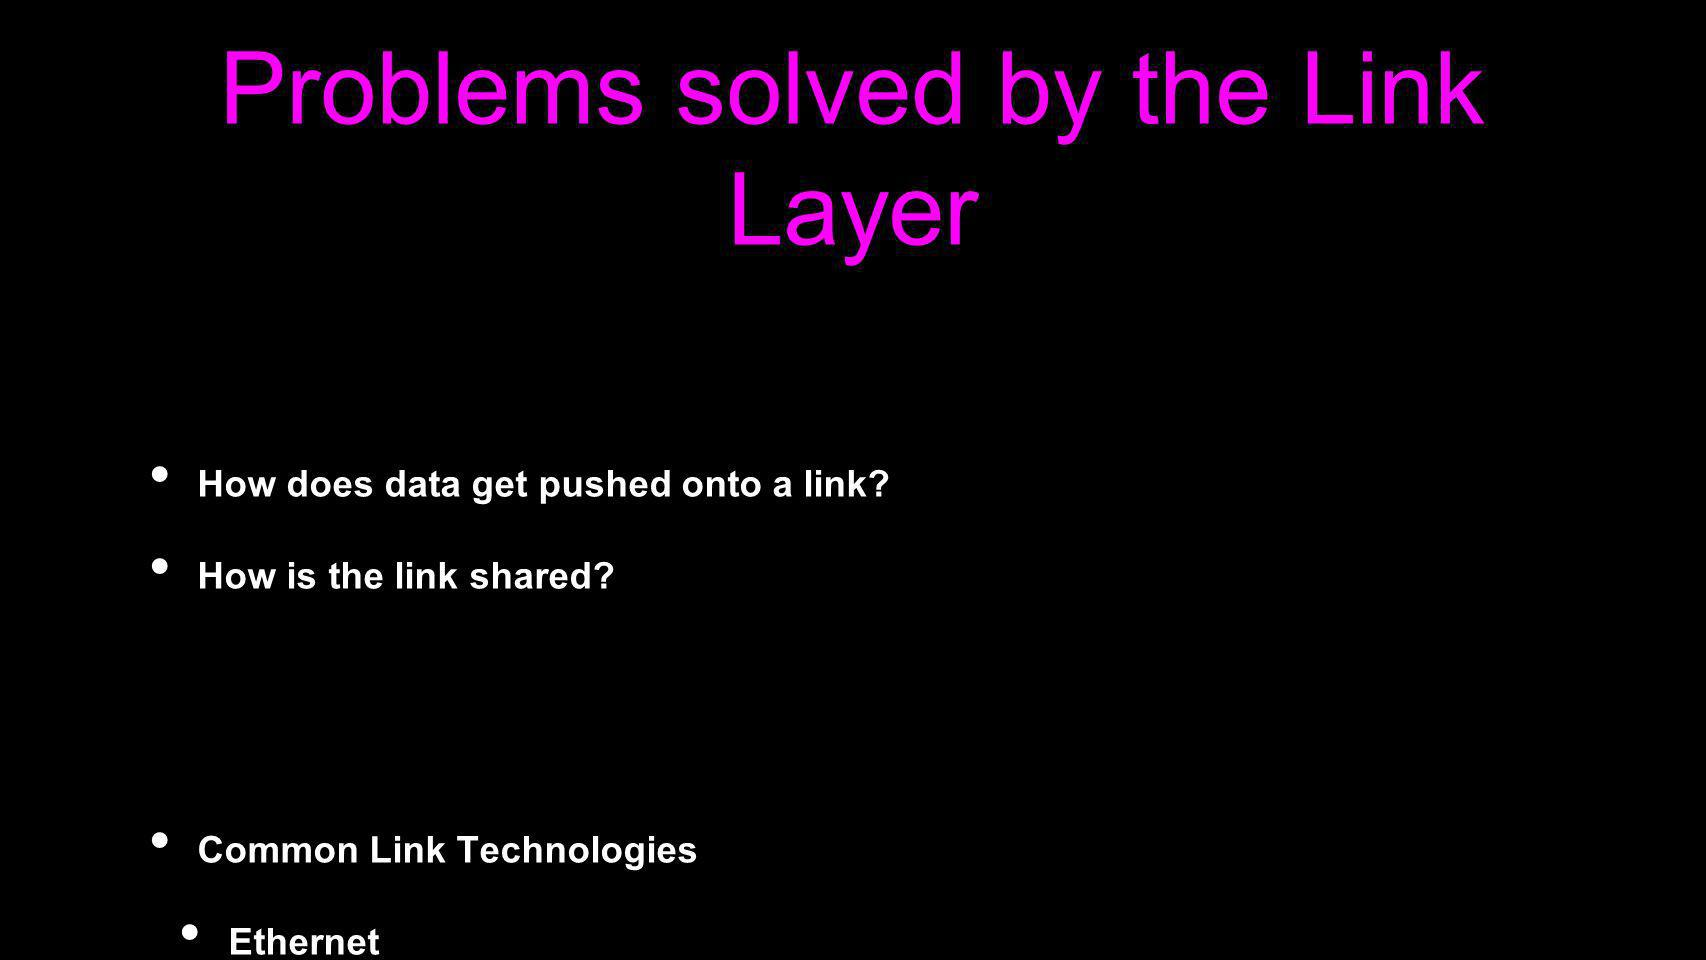 Problems solved by the Link Layer